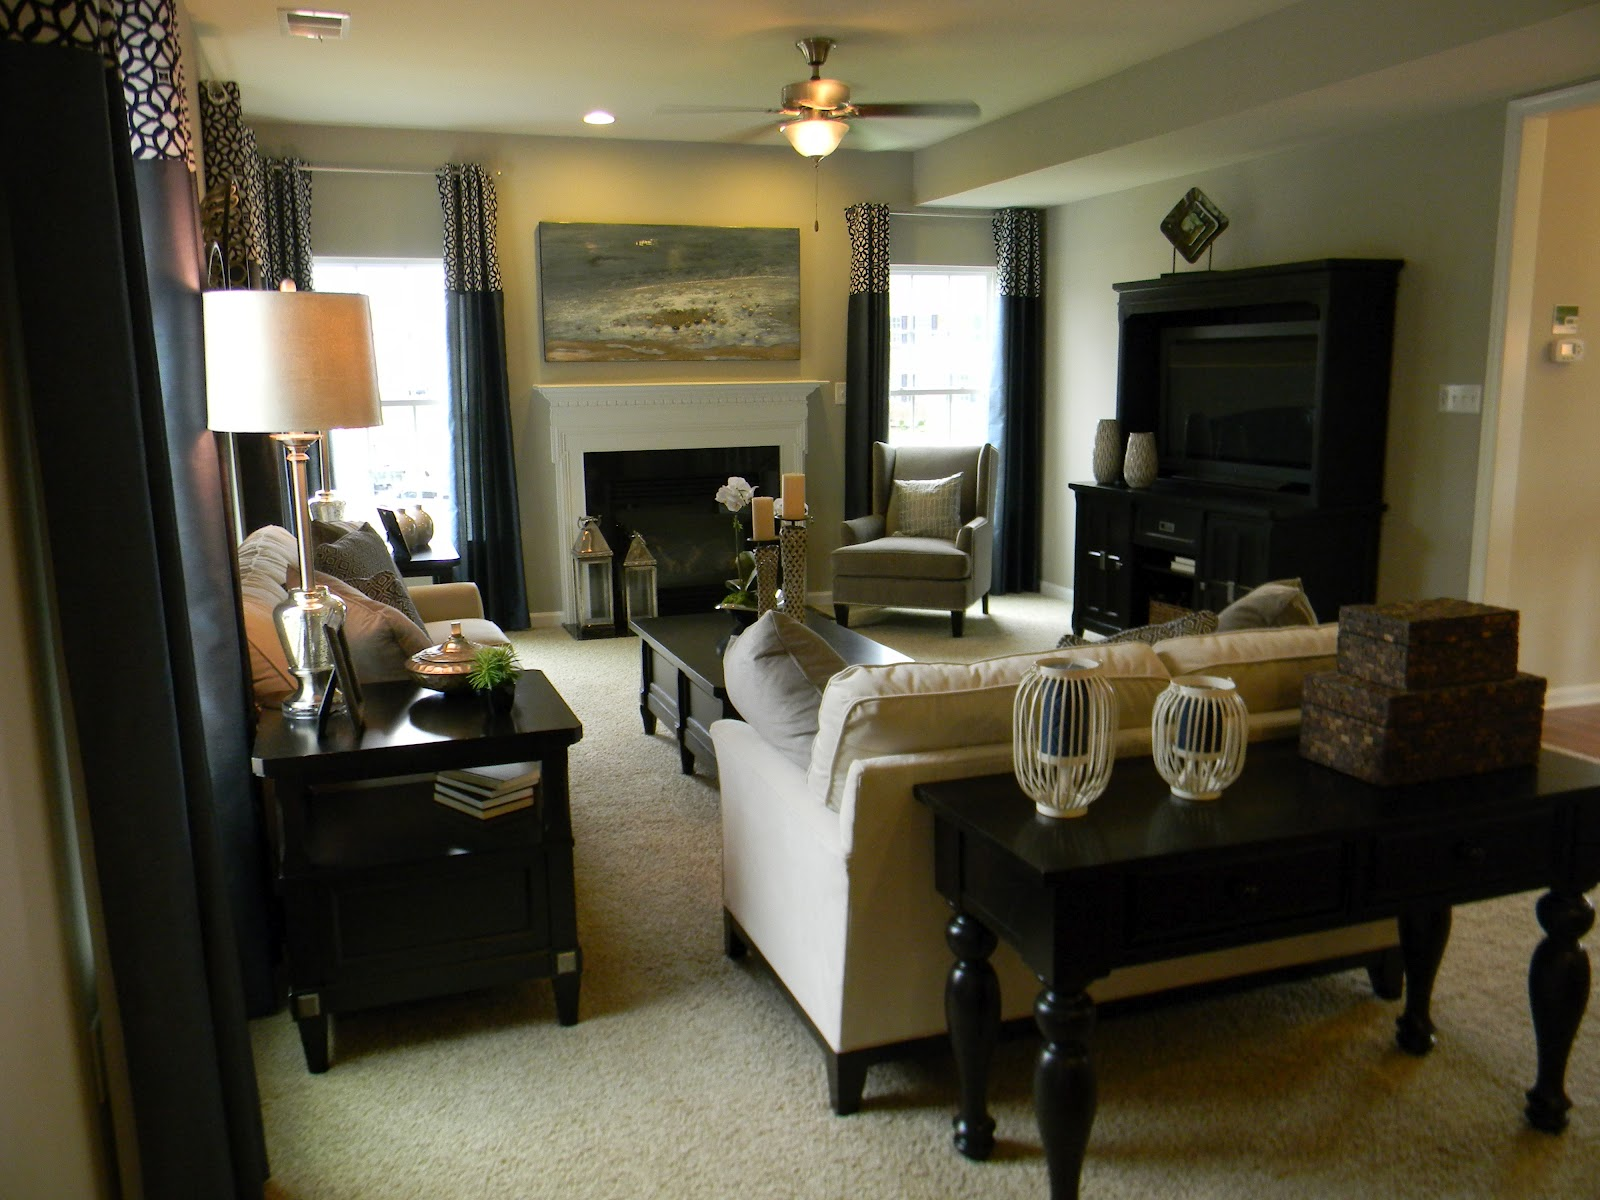 seaside interiors stopping by the model home